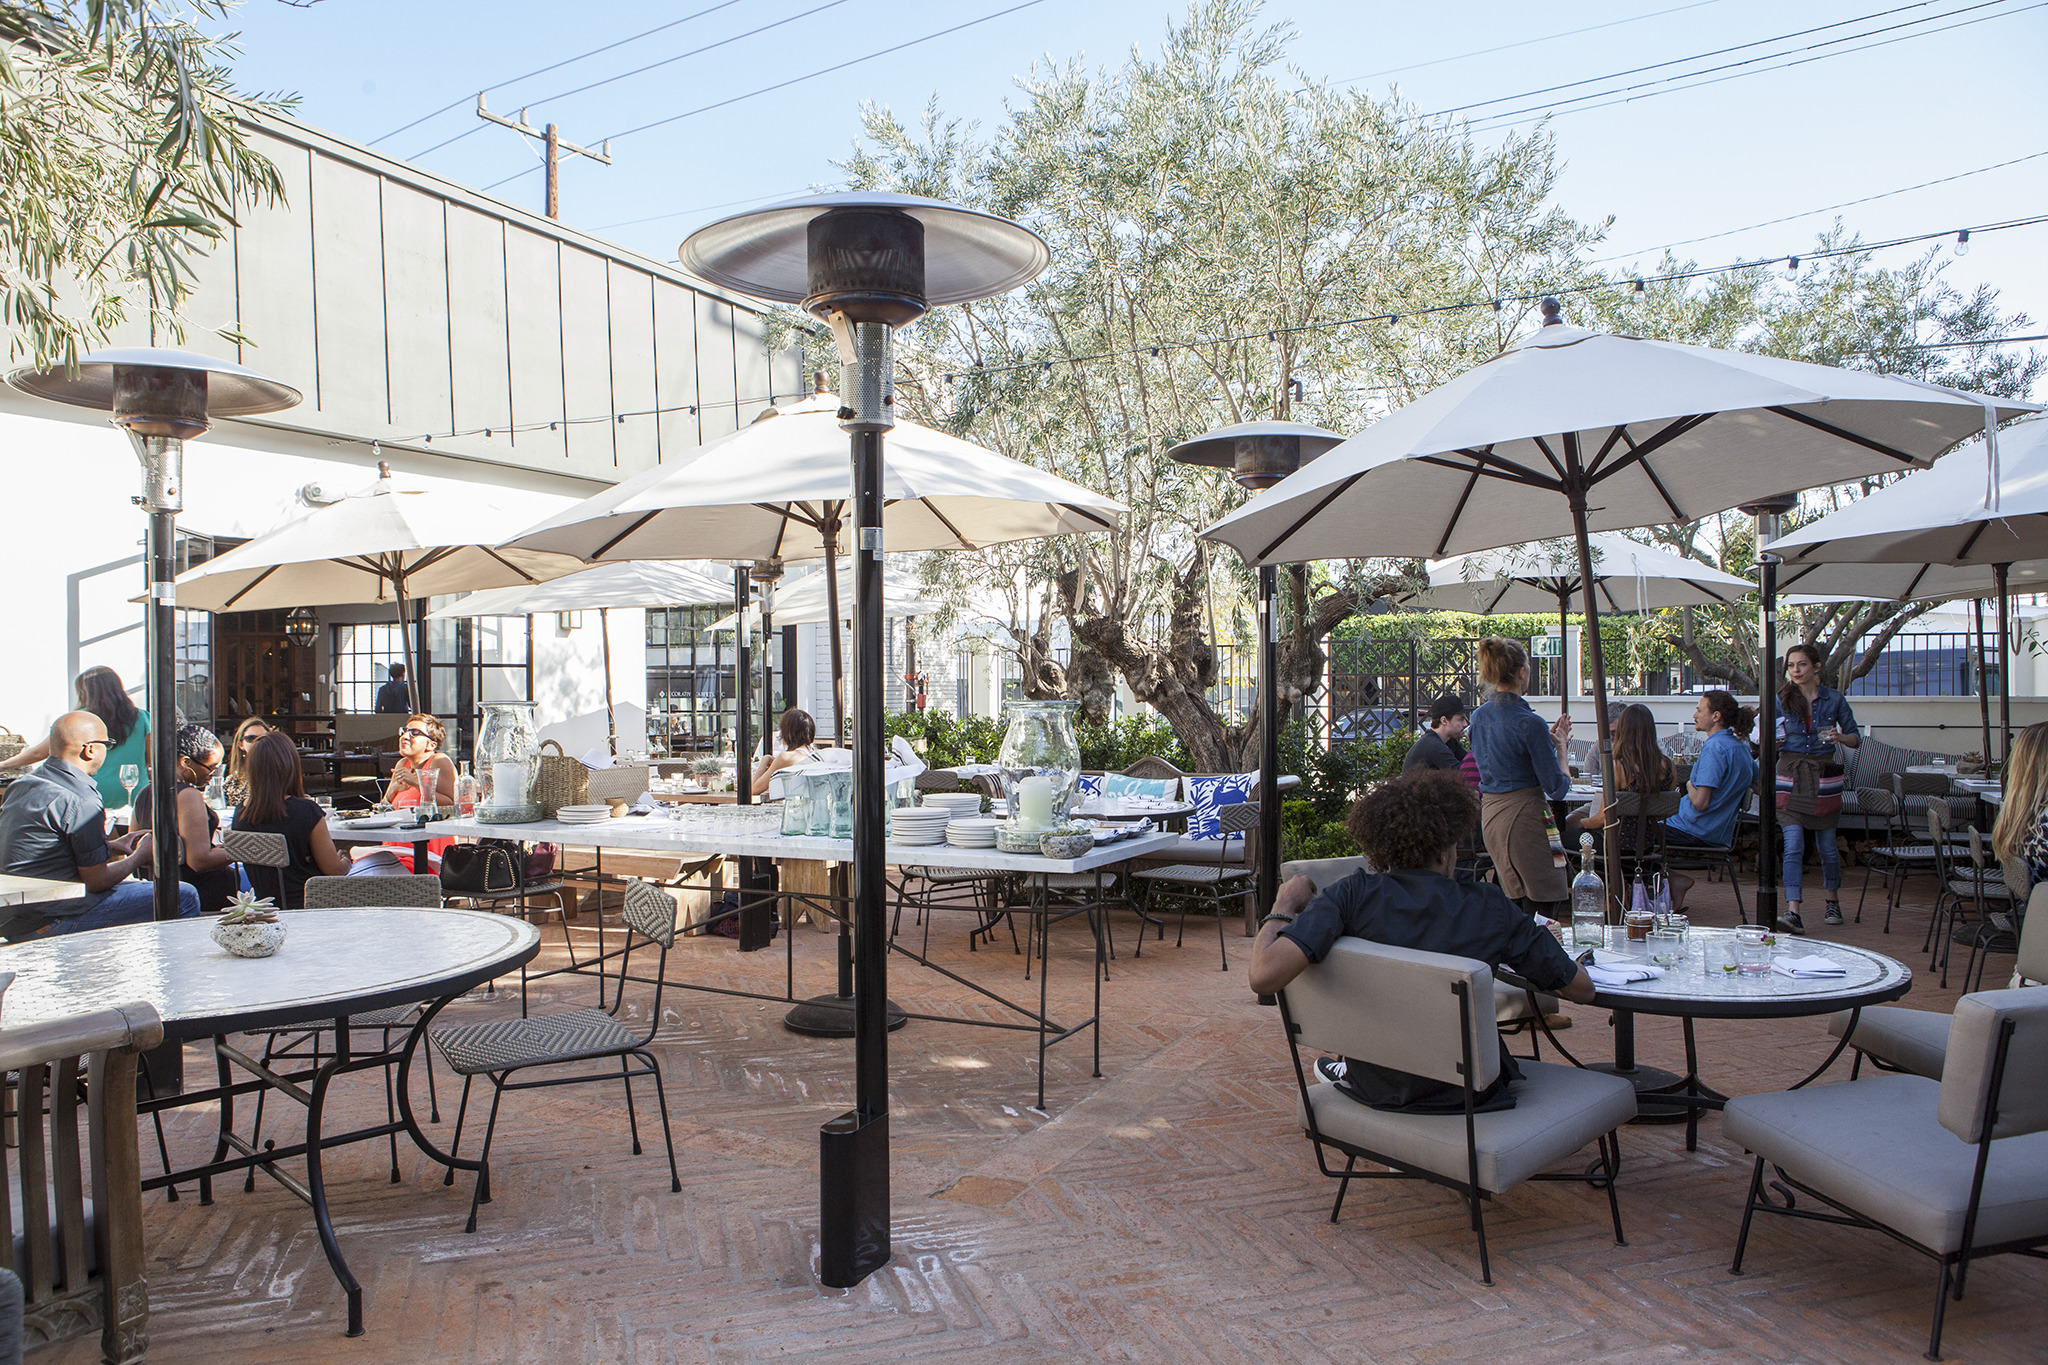 Best outdoor dining restaurants in los angeles for Best outdoor dining